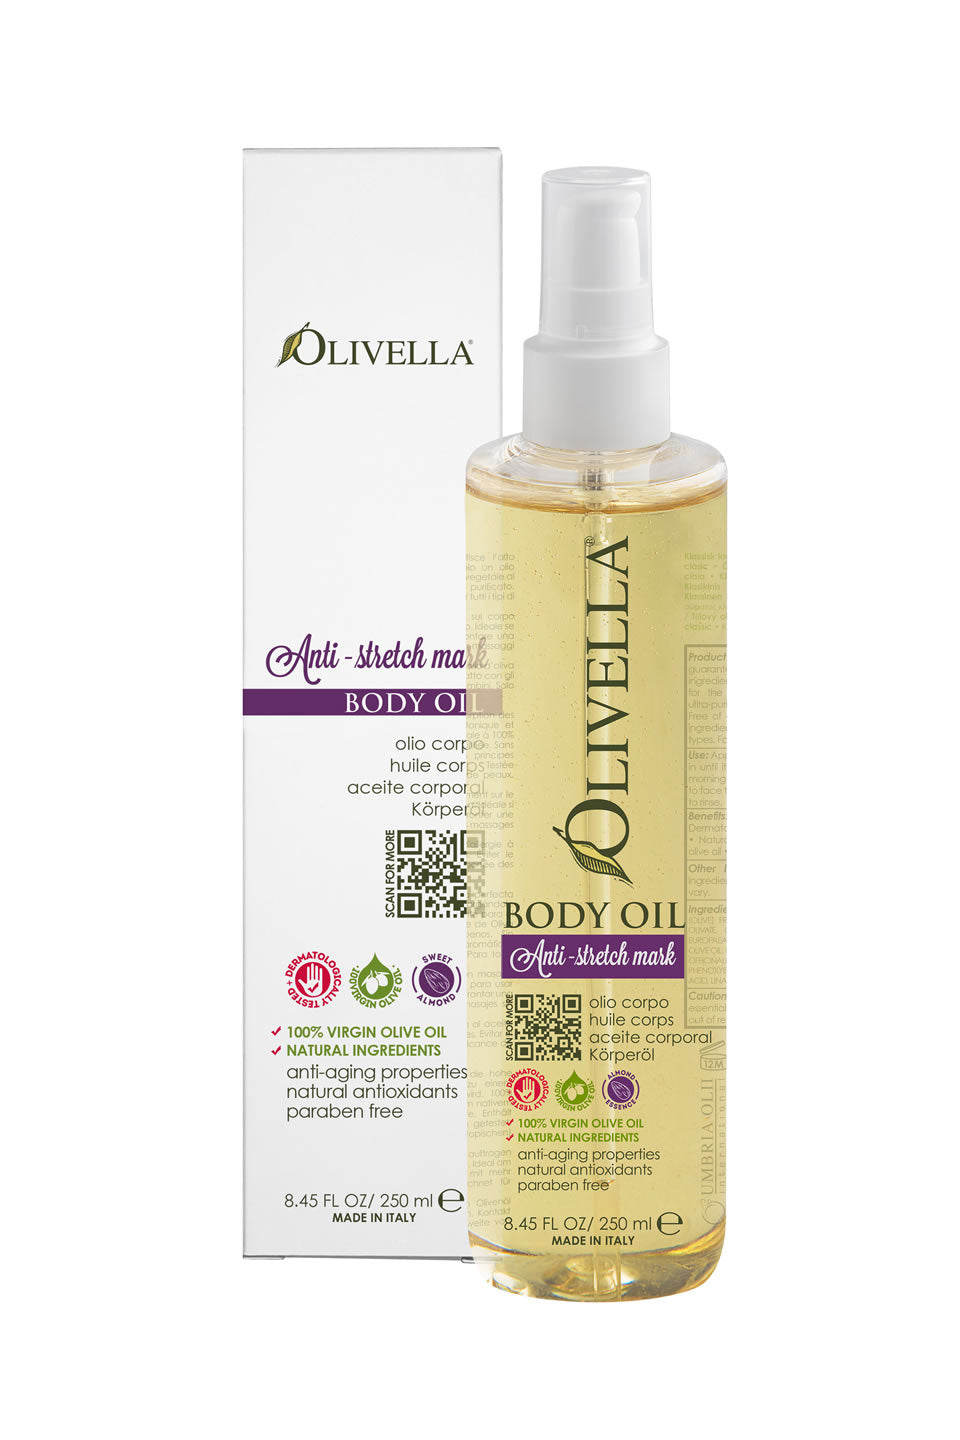 Olivella Body Oil - Anti-Stretch Mark 8.45 Oz - Olivella